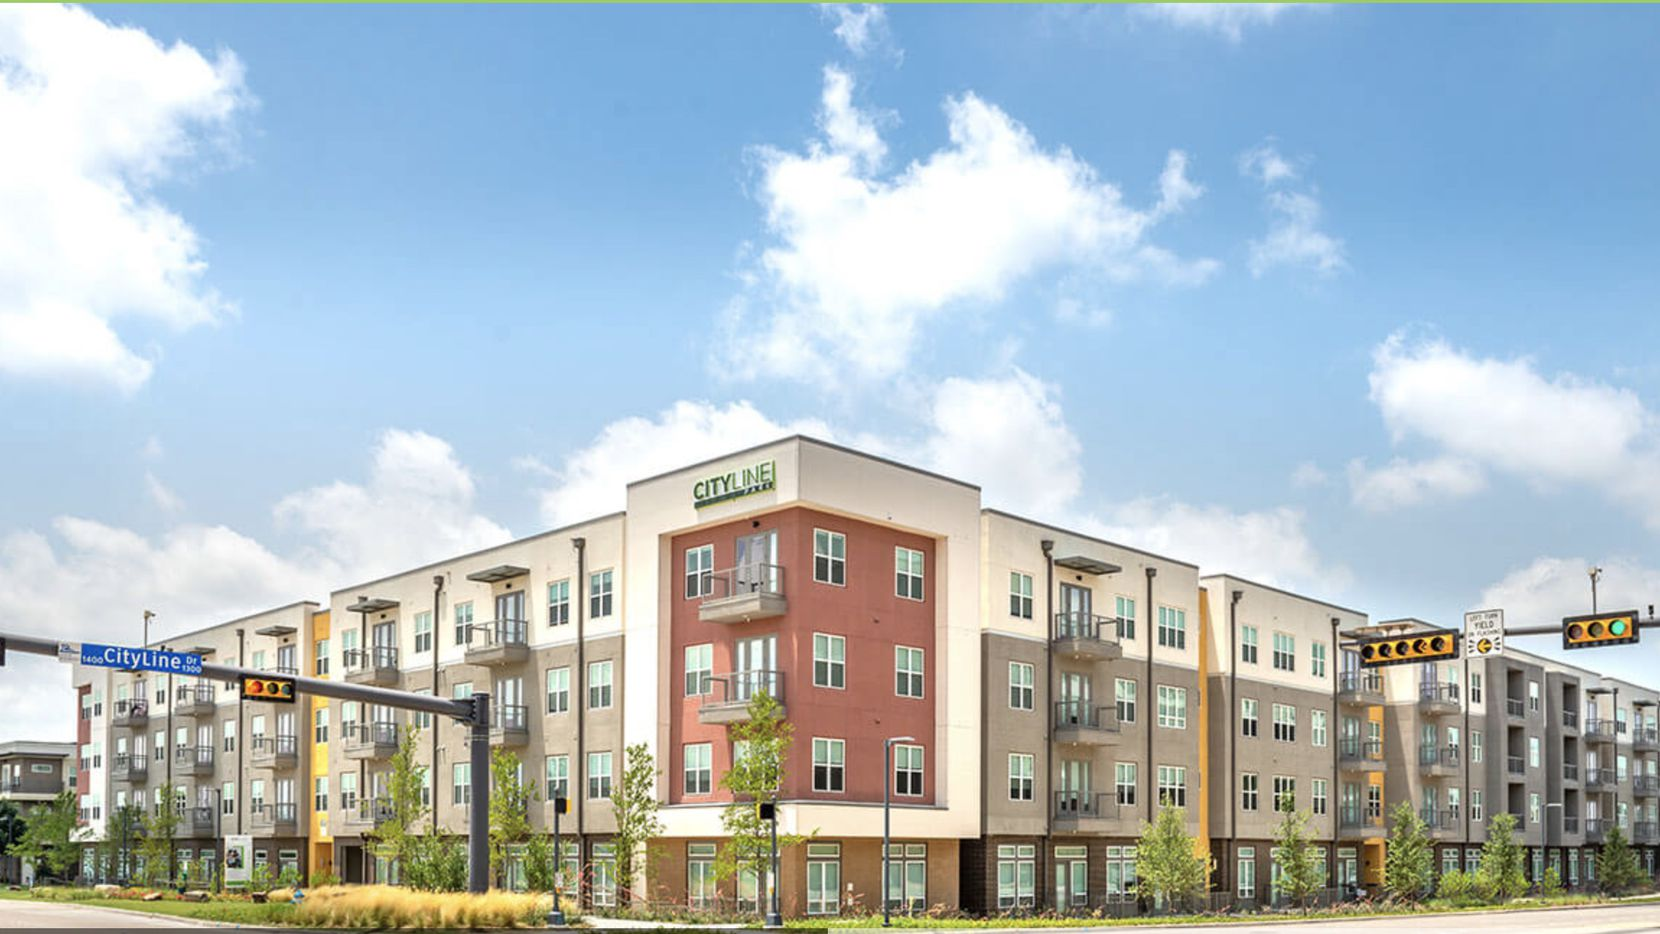 The CityLine Park apartments are on Plano Road south of Bush Turnpike.